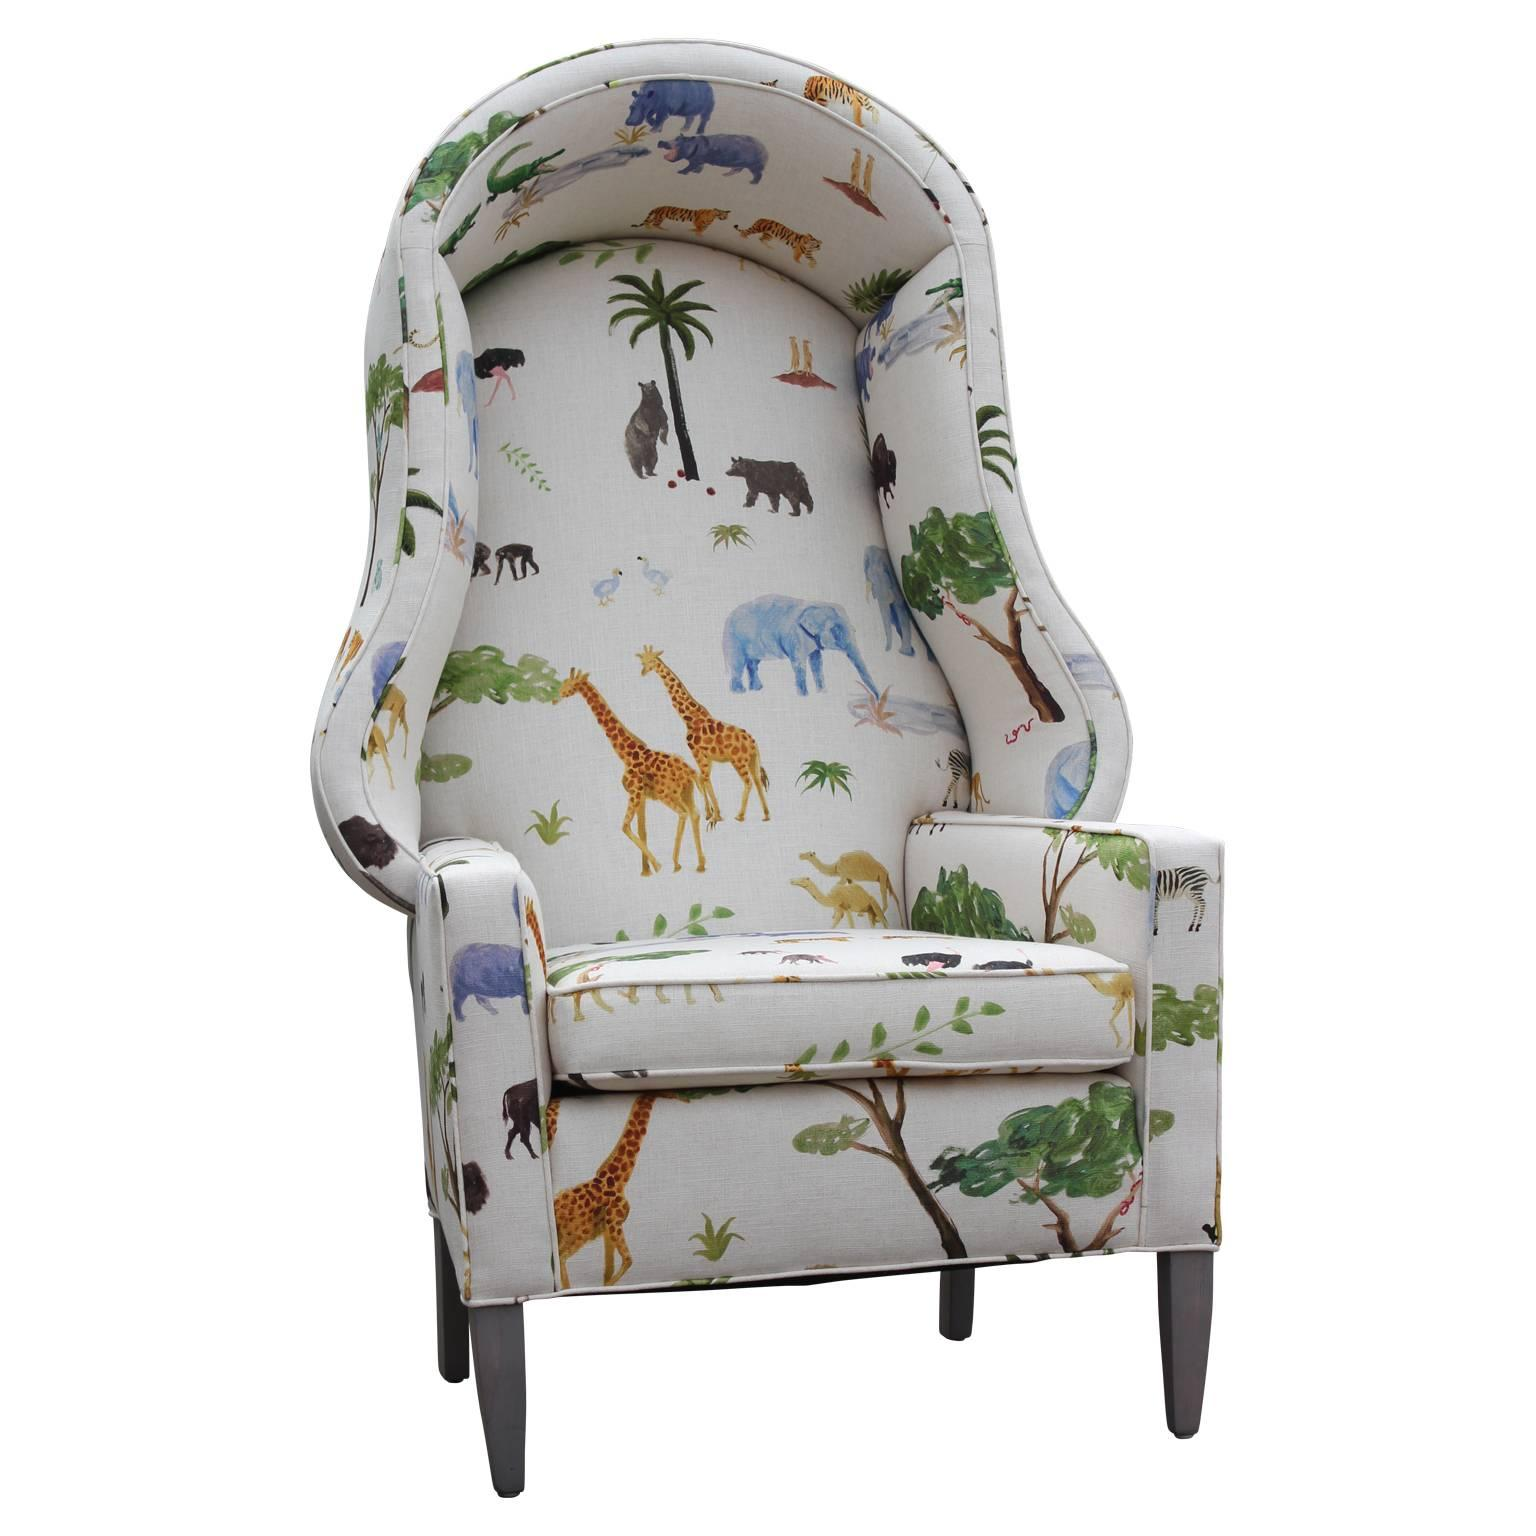 Pleasing Modern Porters Chair In The Style Of Baker Furniture In Safari Animal Print Cjindustries Chair Design For Home Cjindustriesco